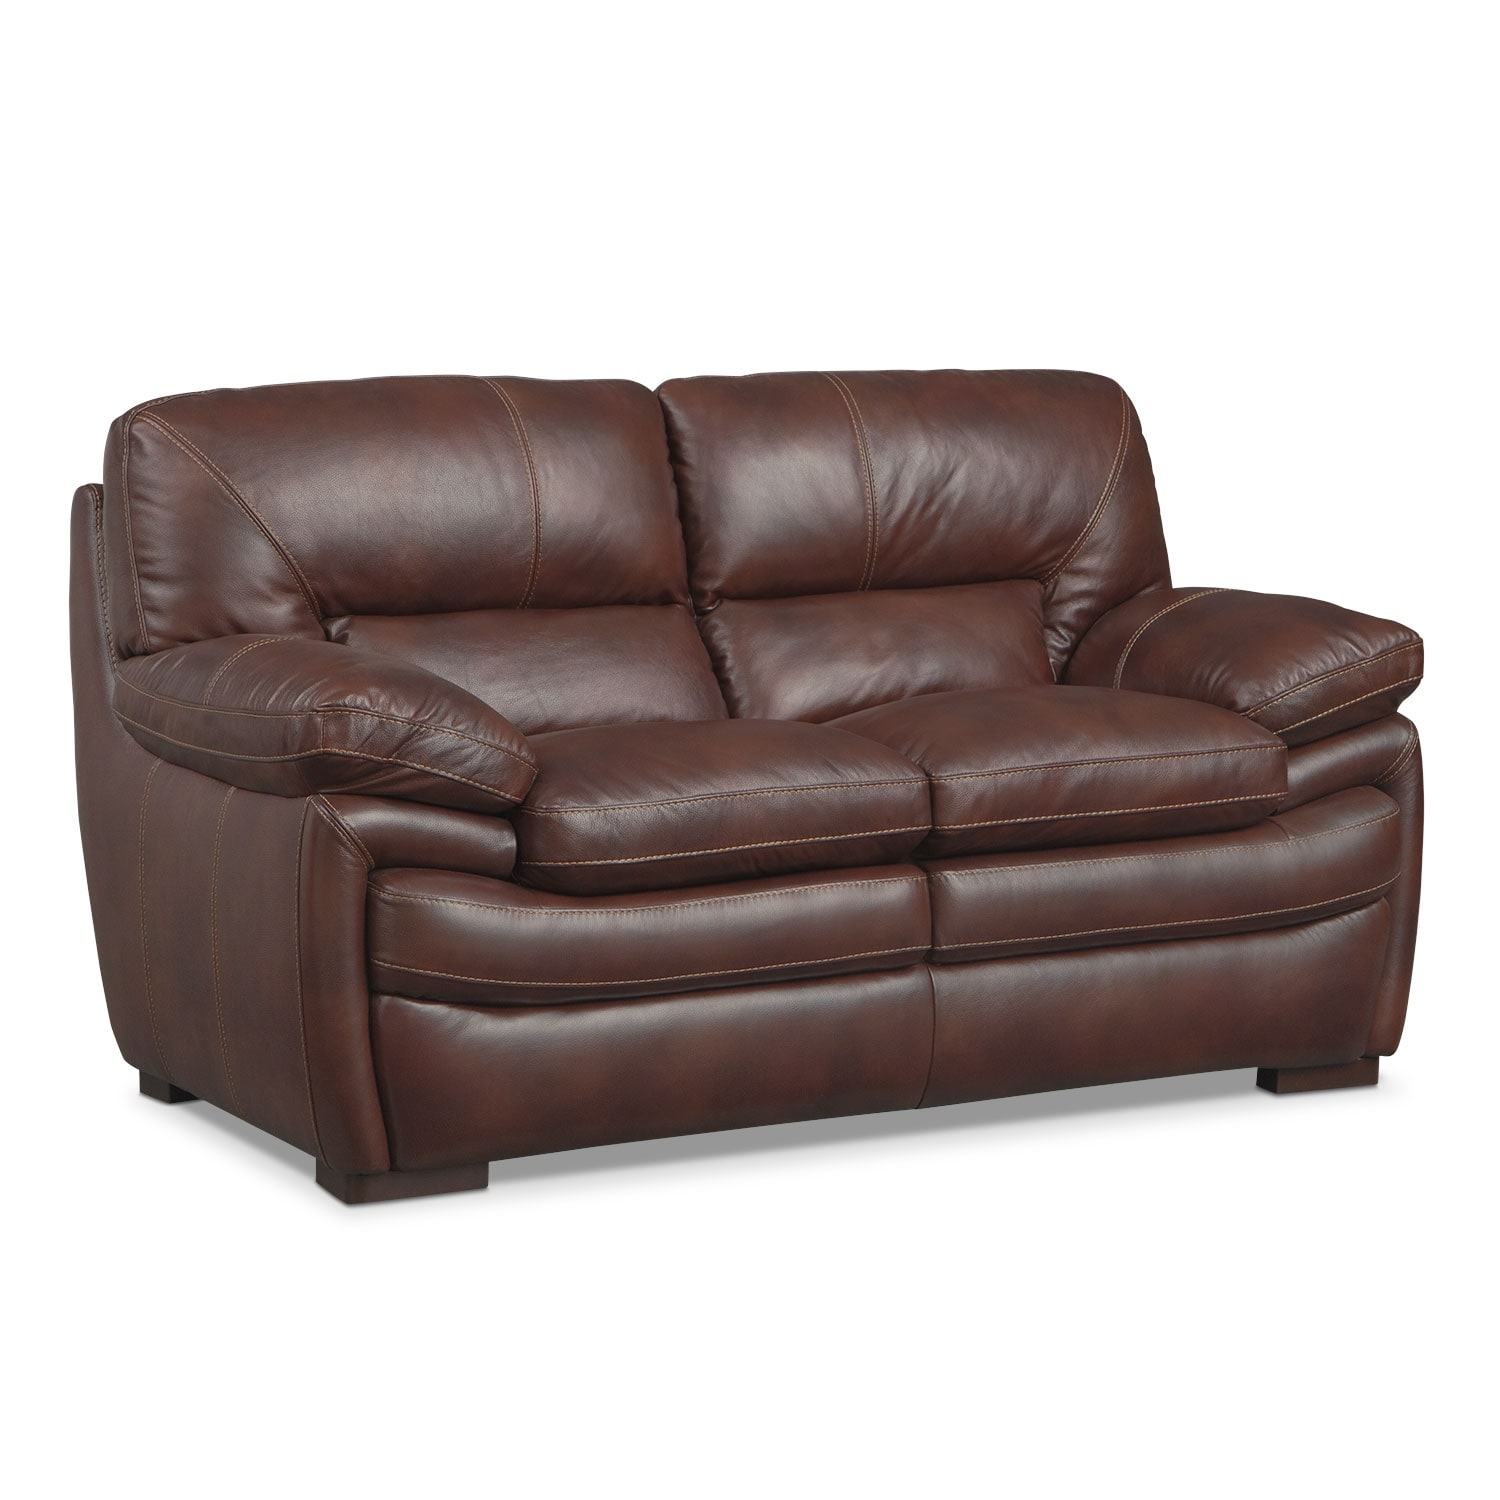 Peyton Chestnut Loveseat